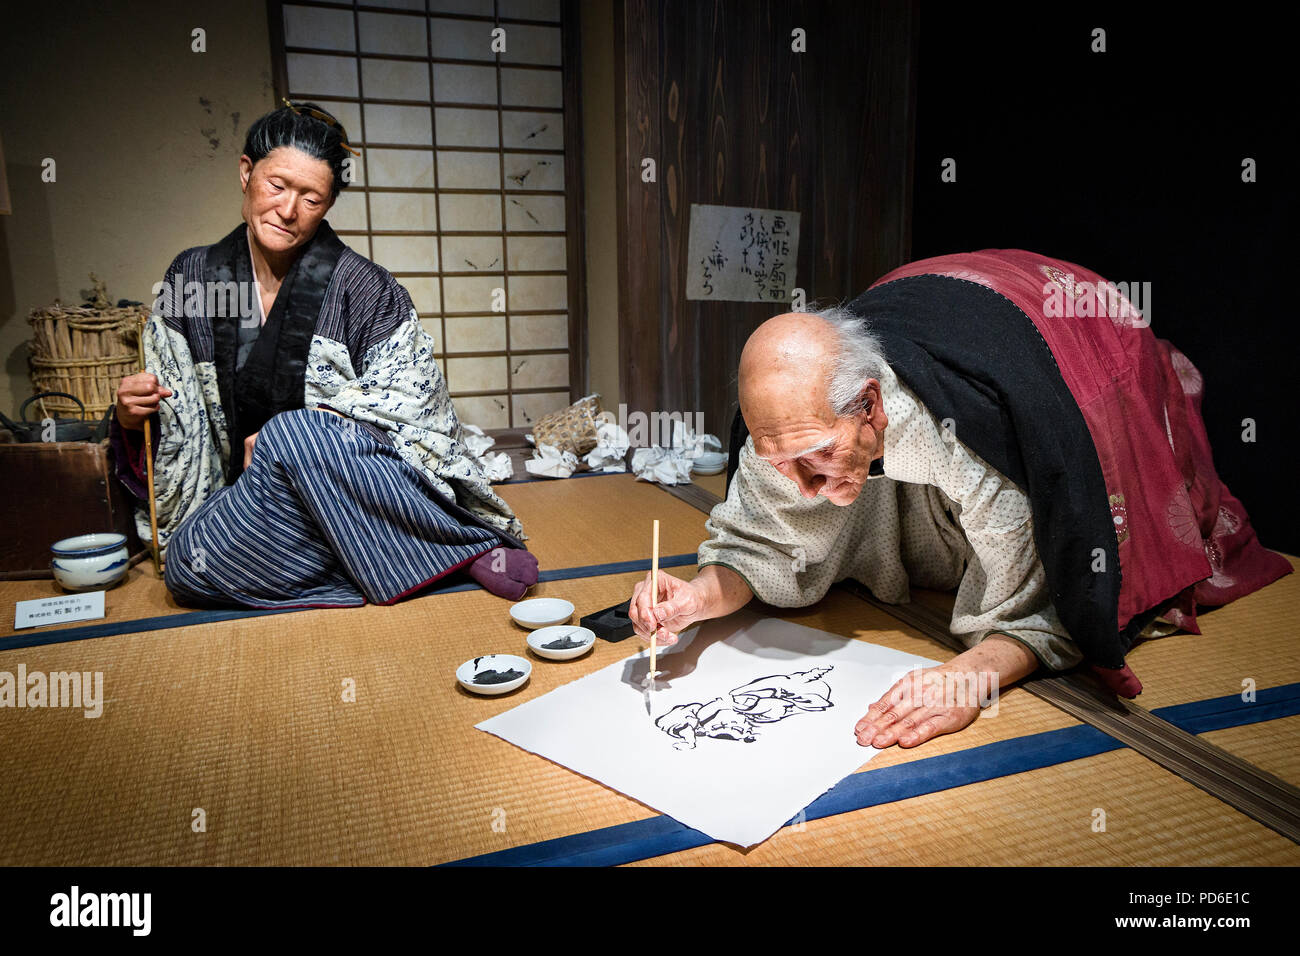 Japan, Honshu island, Kanto, Tokyo, by the Hokusai Museum, a scene representing Hokusai painting and his daughter. - Stock Image